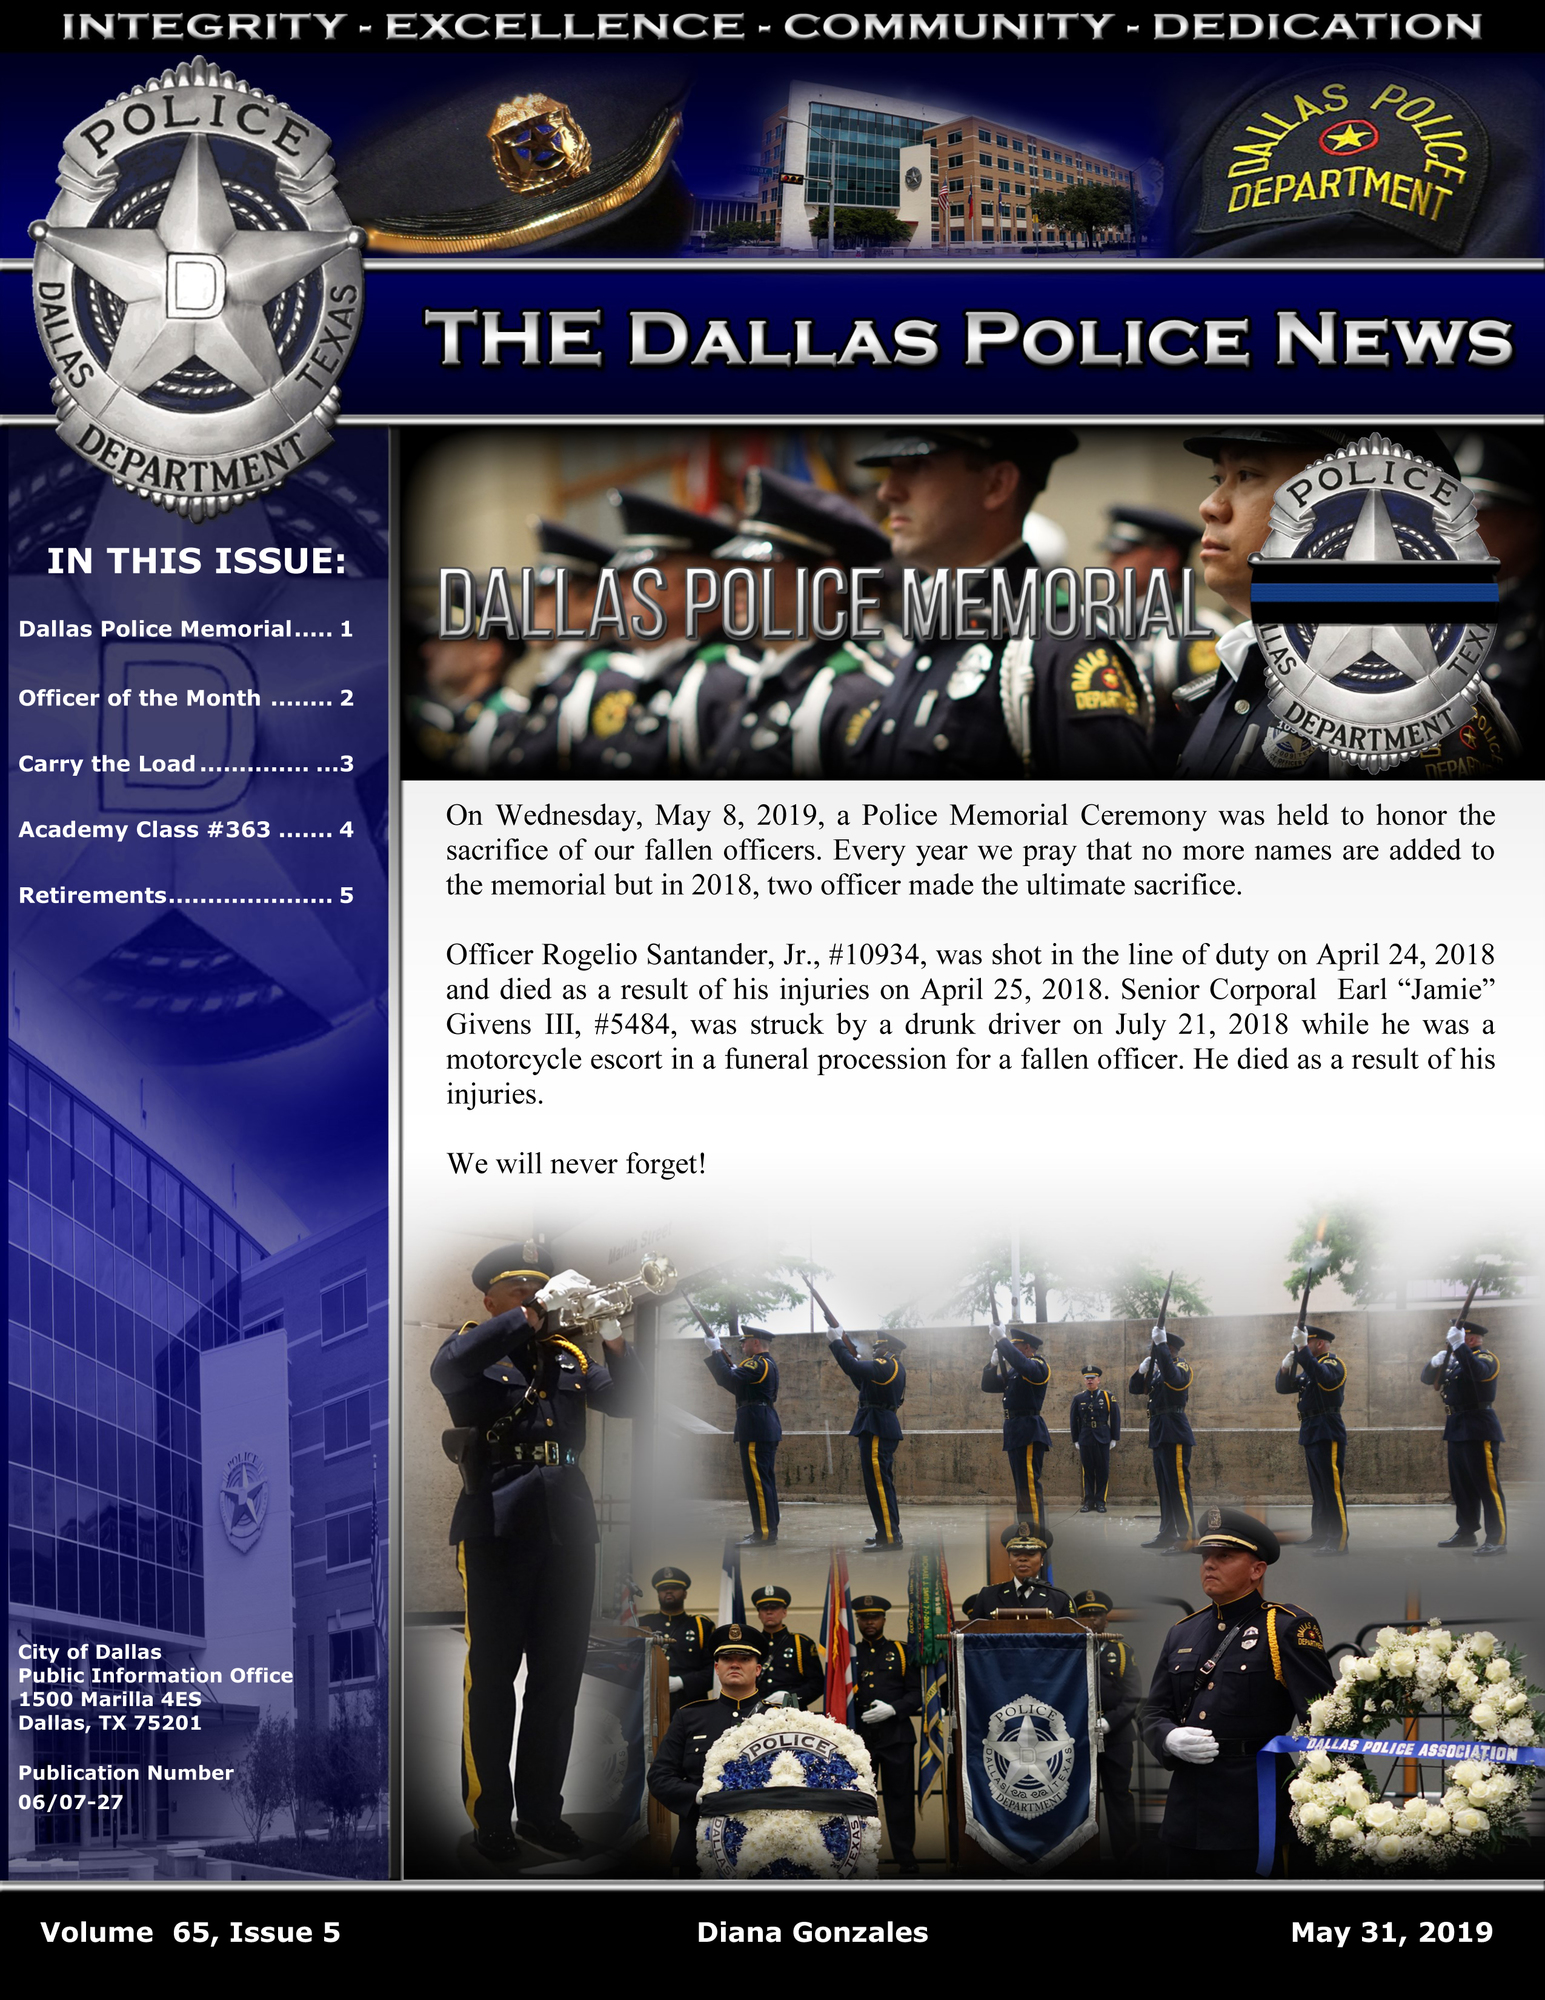 The Police News, Volume 65, Issue 5